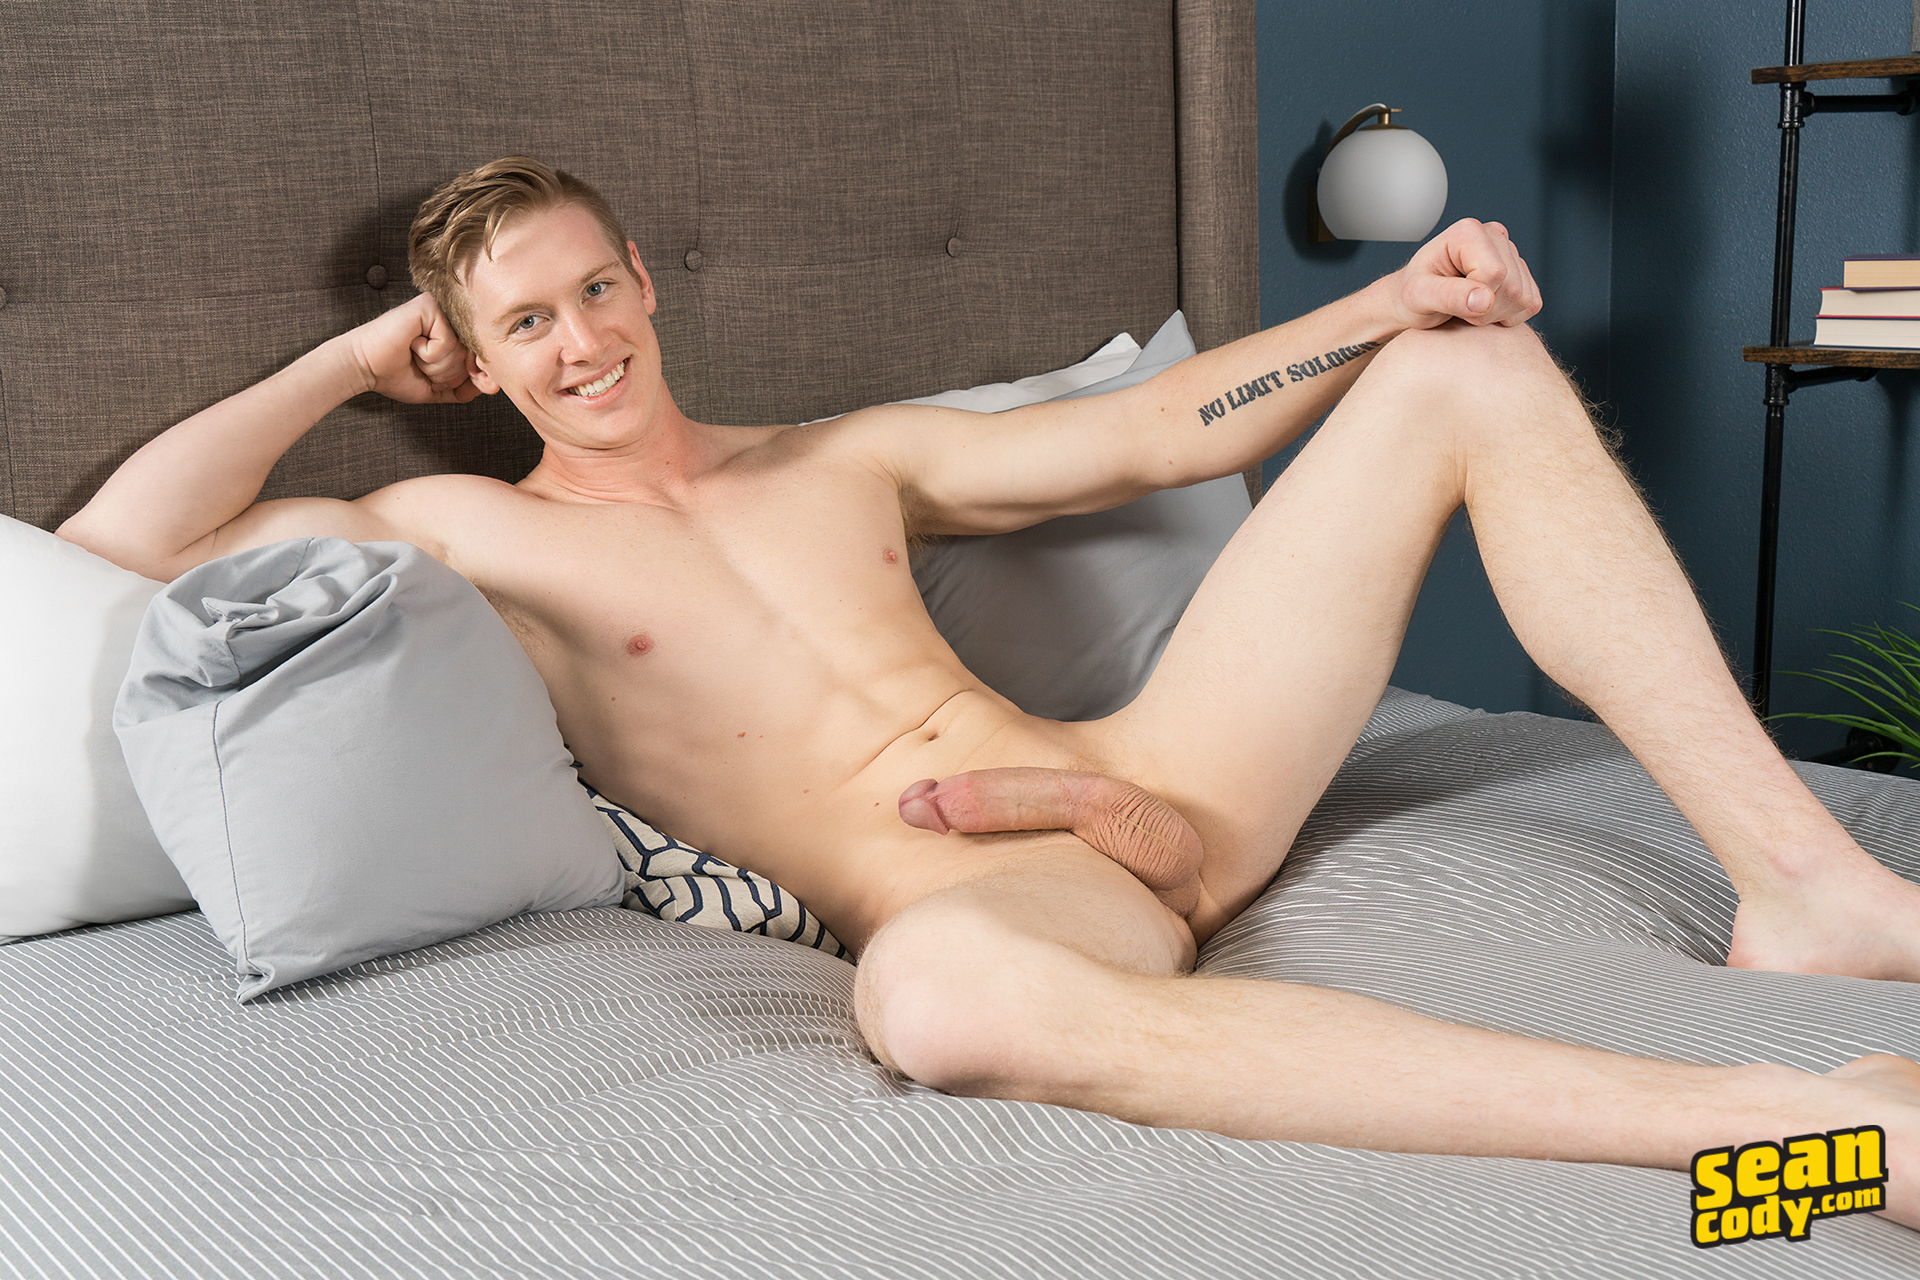 Naked jock reclines on a bed with his long cock hard